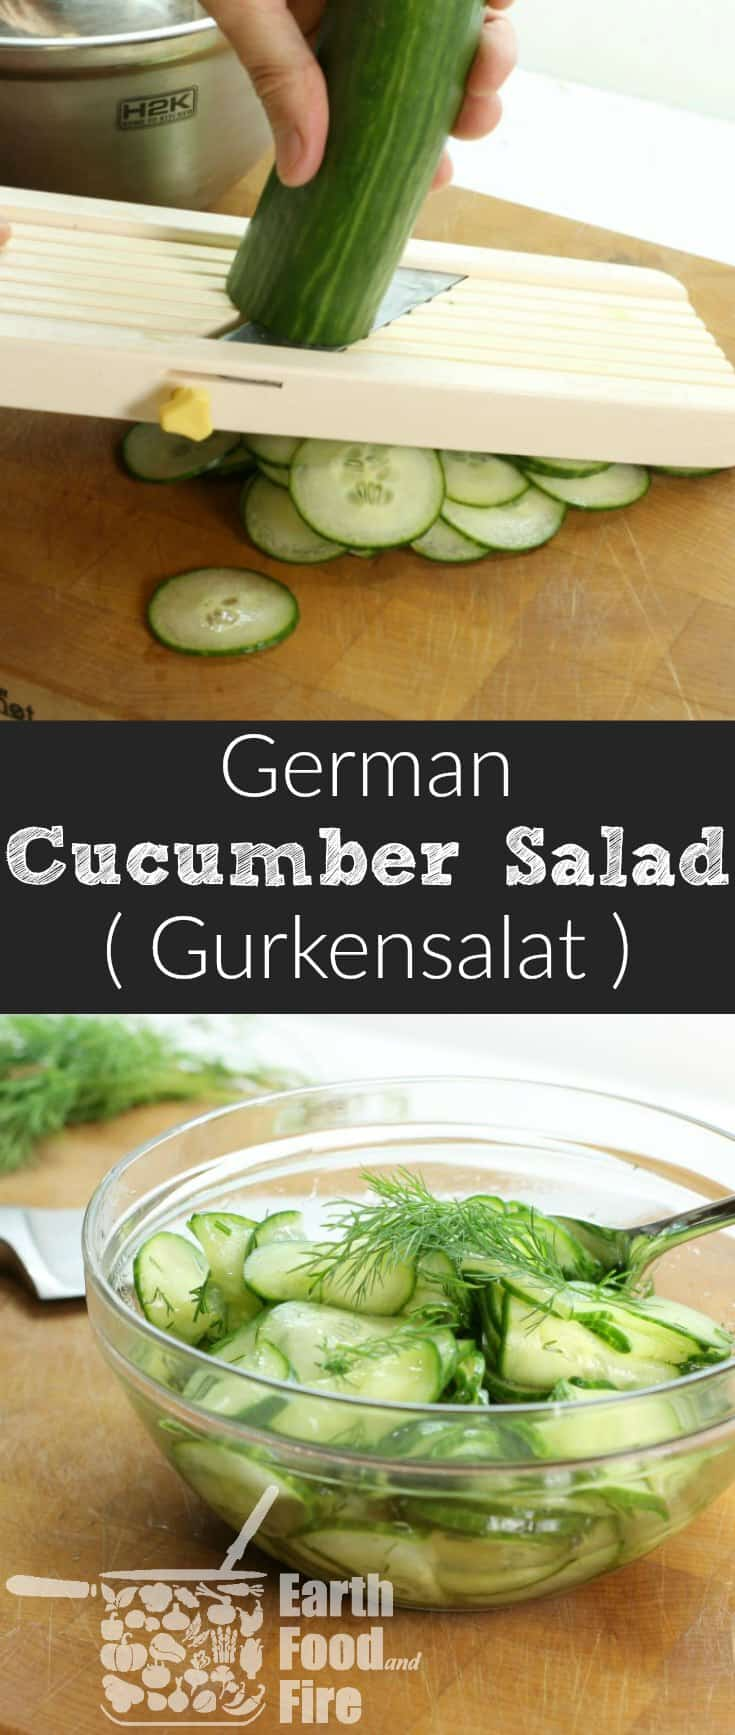 A quick and refreshing German Cucumber Salad recipe, featuring only 4 ingredients! Perfect with a light lunch or served alongside roasted meats! Gluten Free, Vegetarian, and Whole 30 friendly!